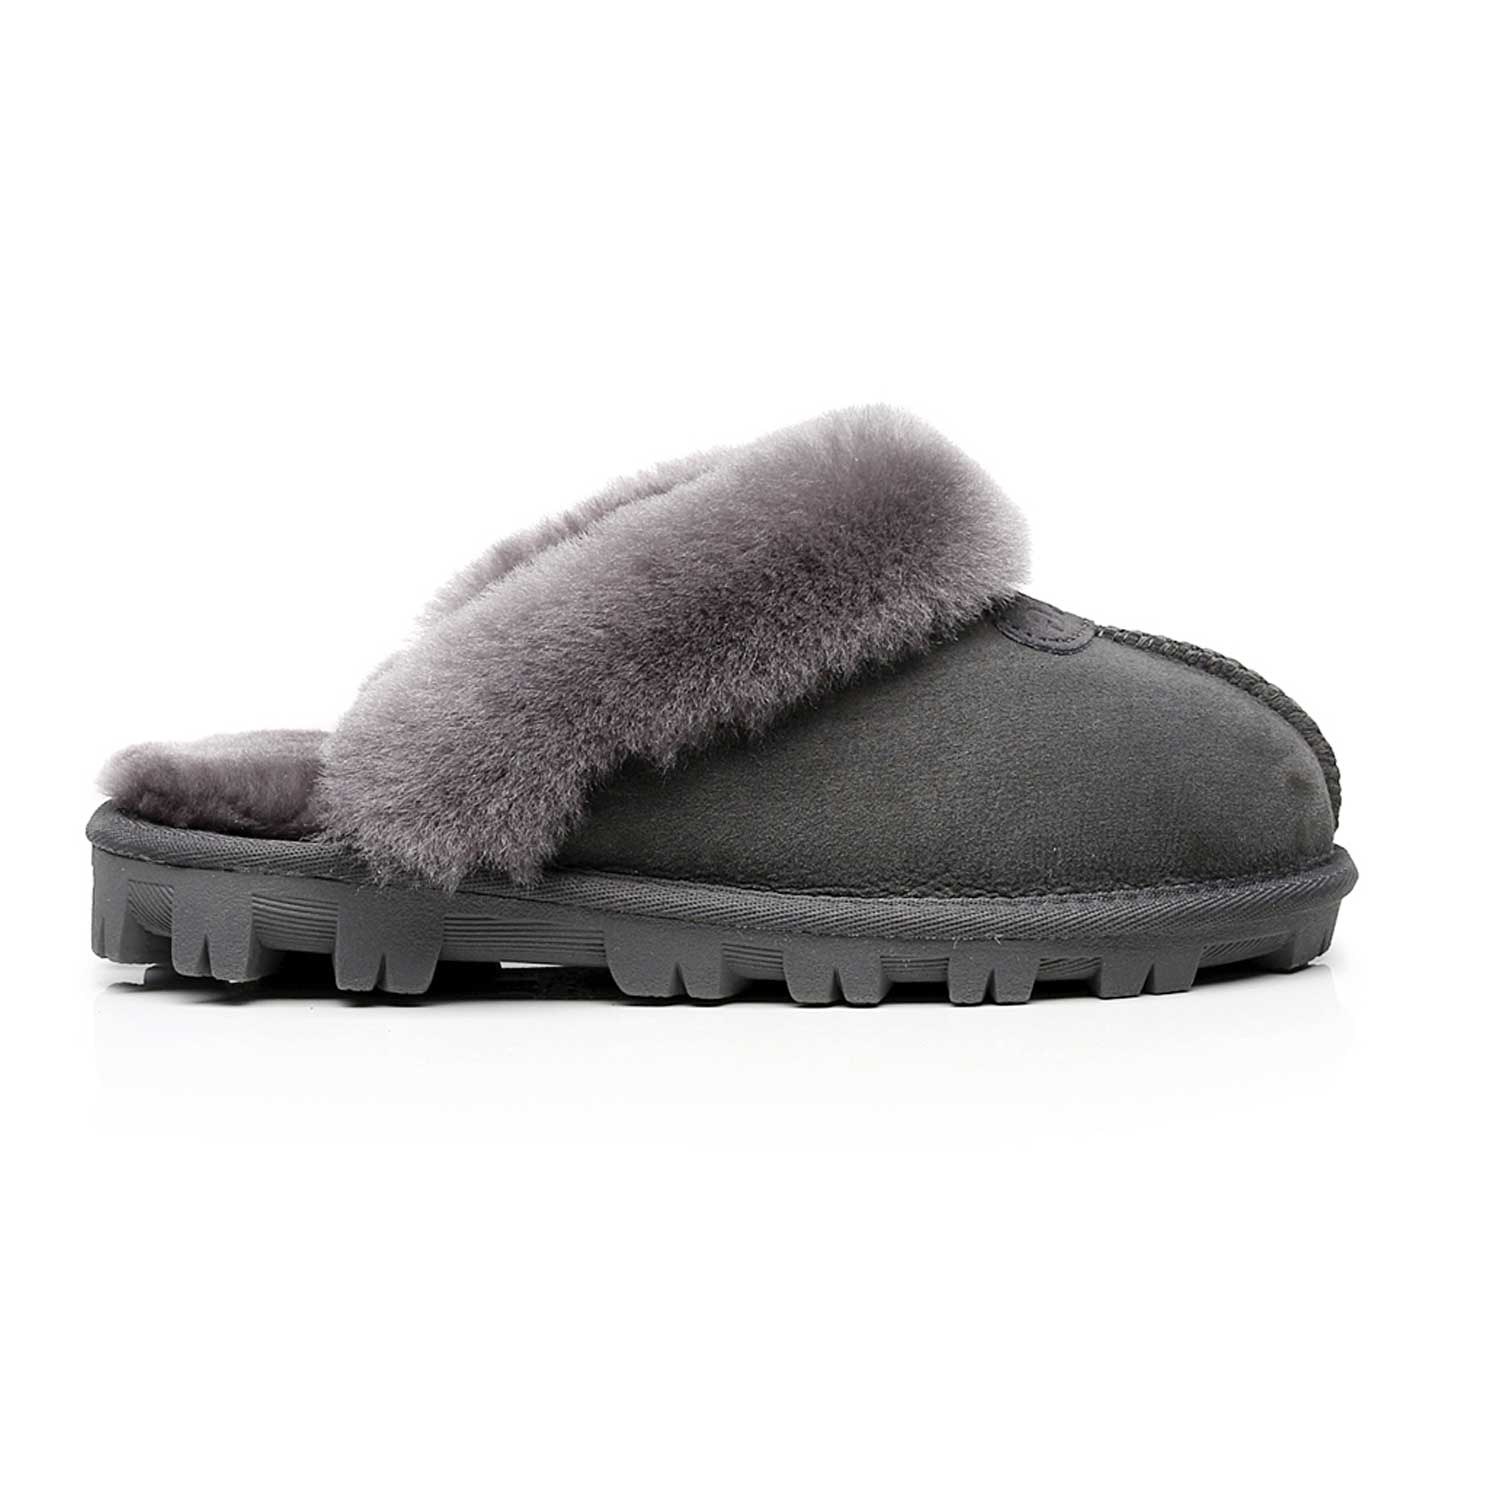 SW1200-Mubo-UGG-Women-039-s-HomeScuff-Slippers-in-Gray-Colour